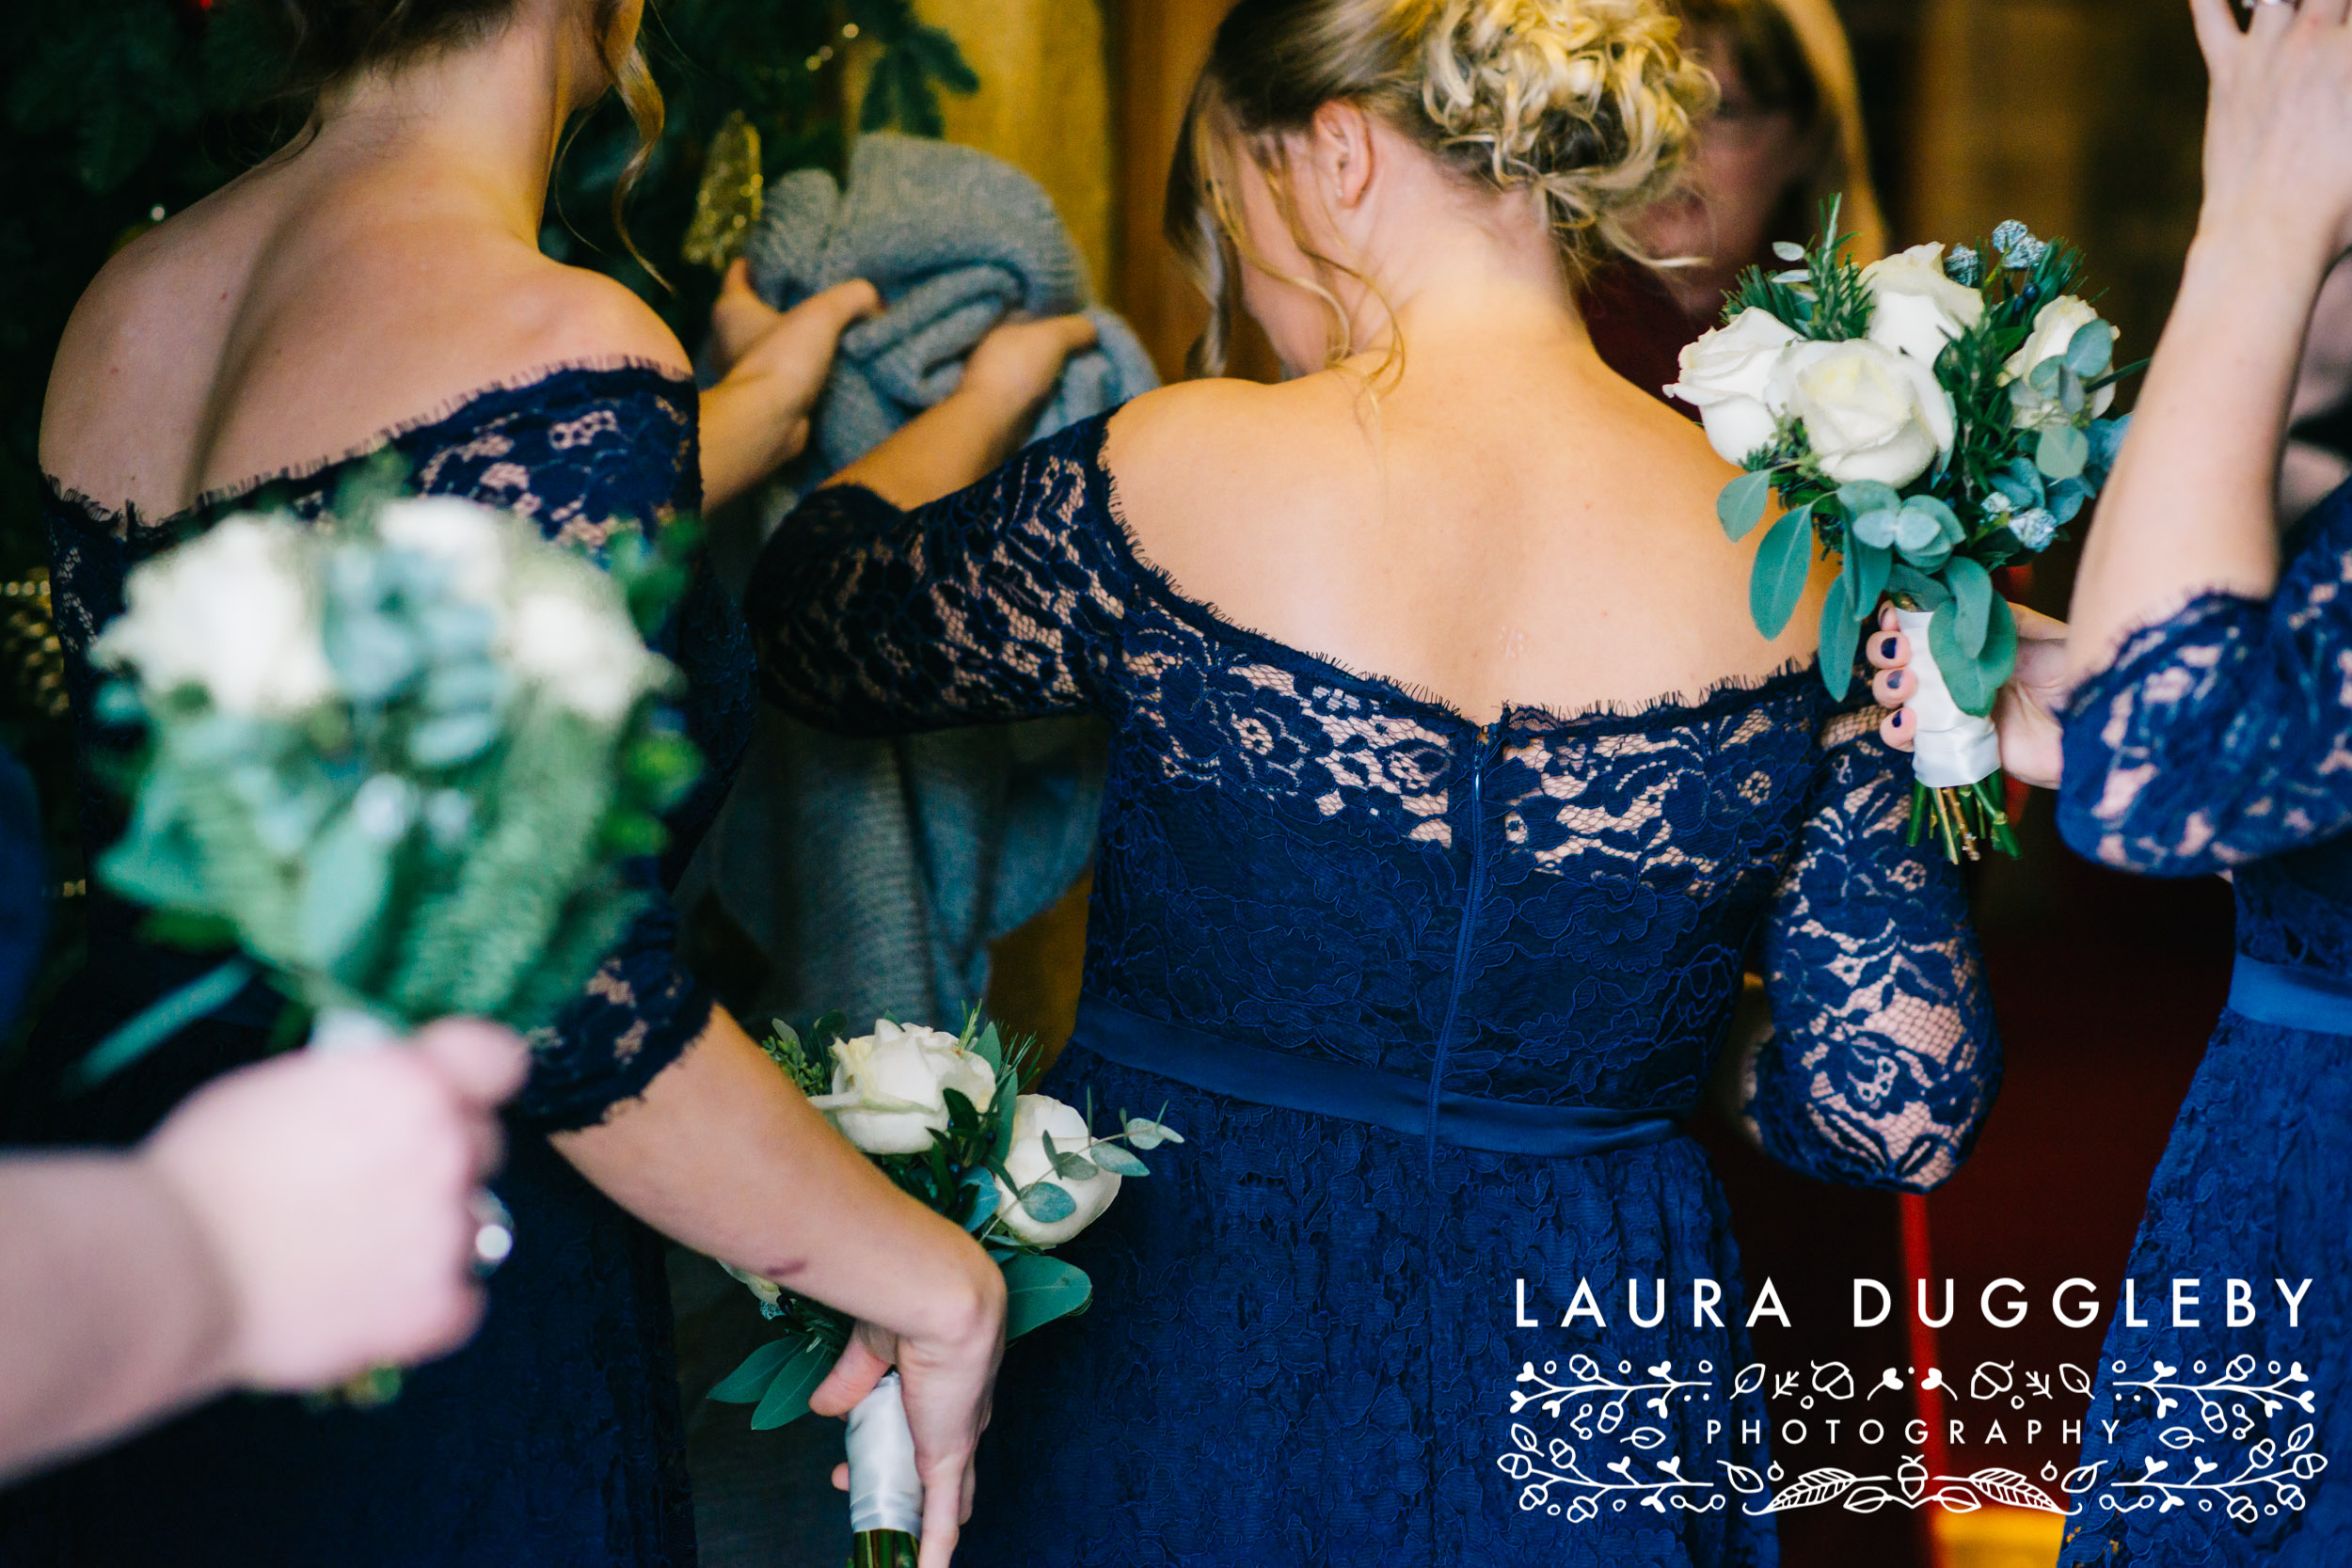 Laura Duggleby Stanley House Wedding Photographer-7.jpg